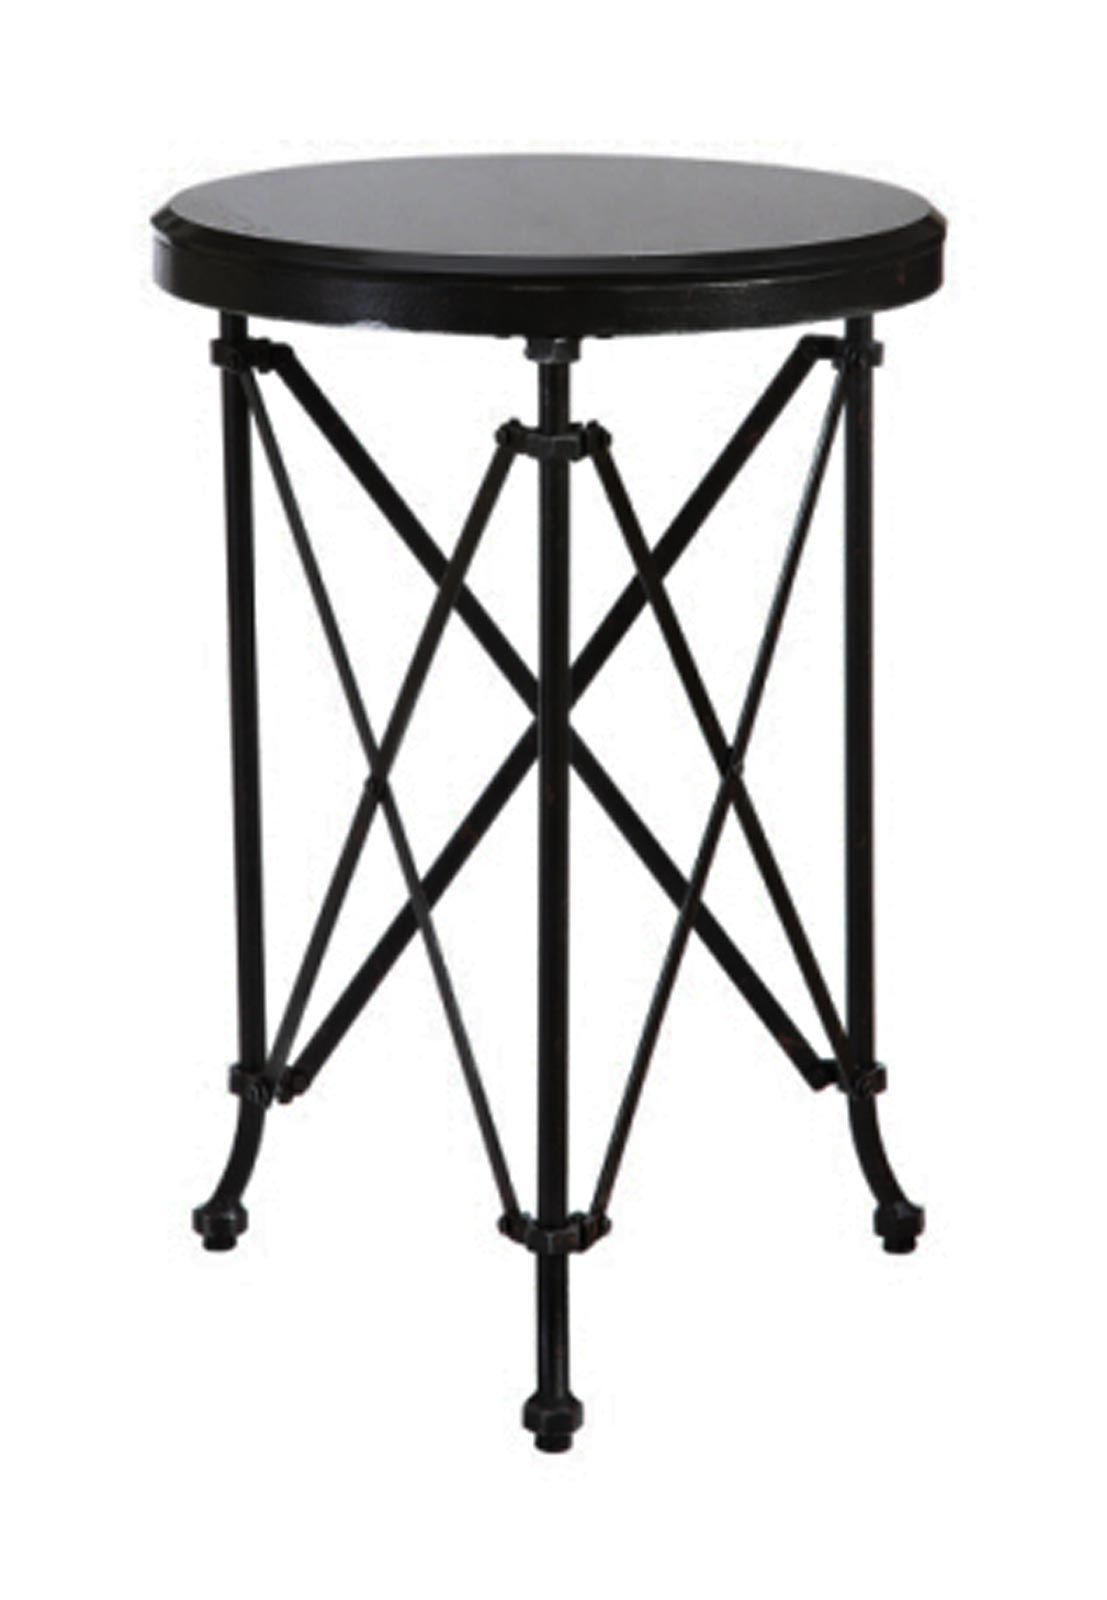 shades outdoor target round darley lighting painting accent table lamps tables drum plus diy design gold lovell extraord parquet trestle redmond end contemporary small mini hafley